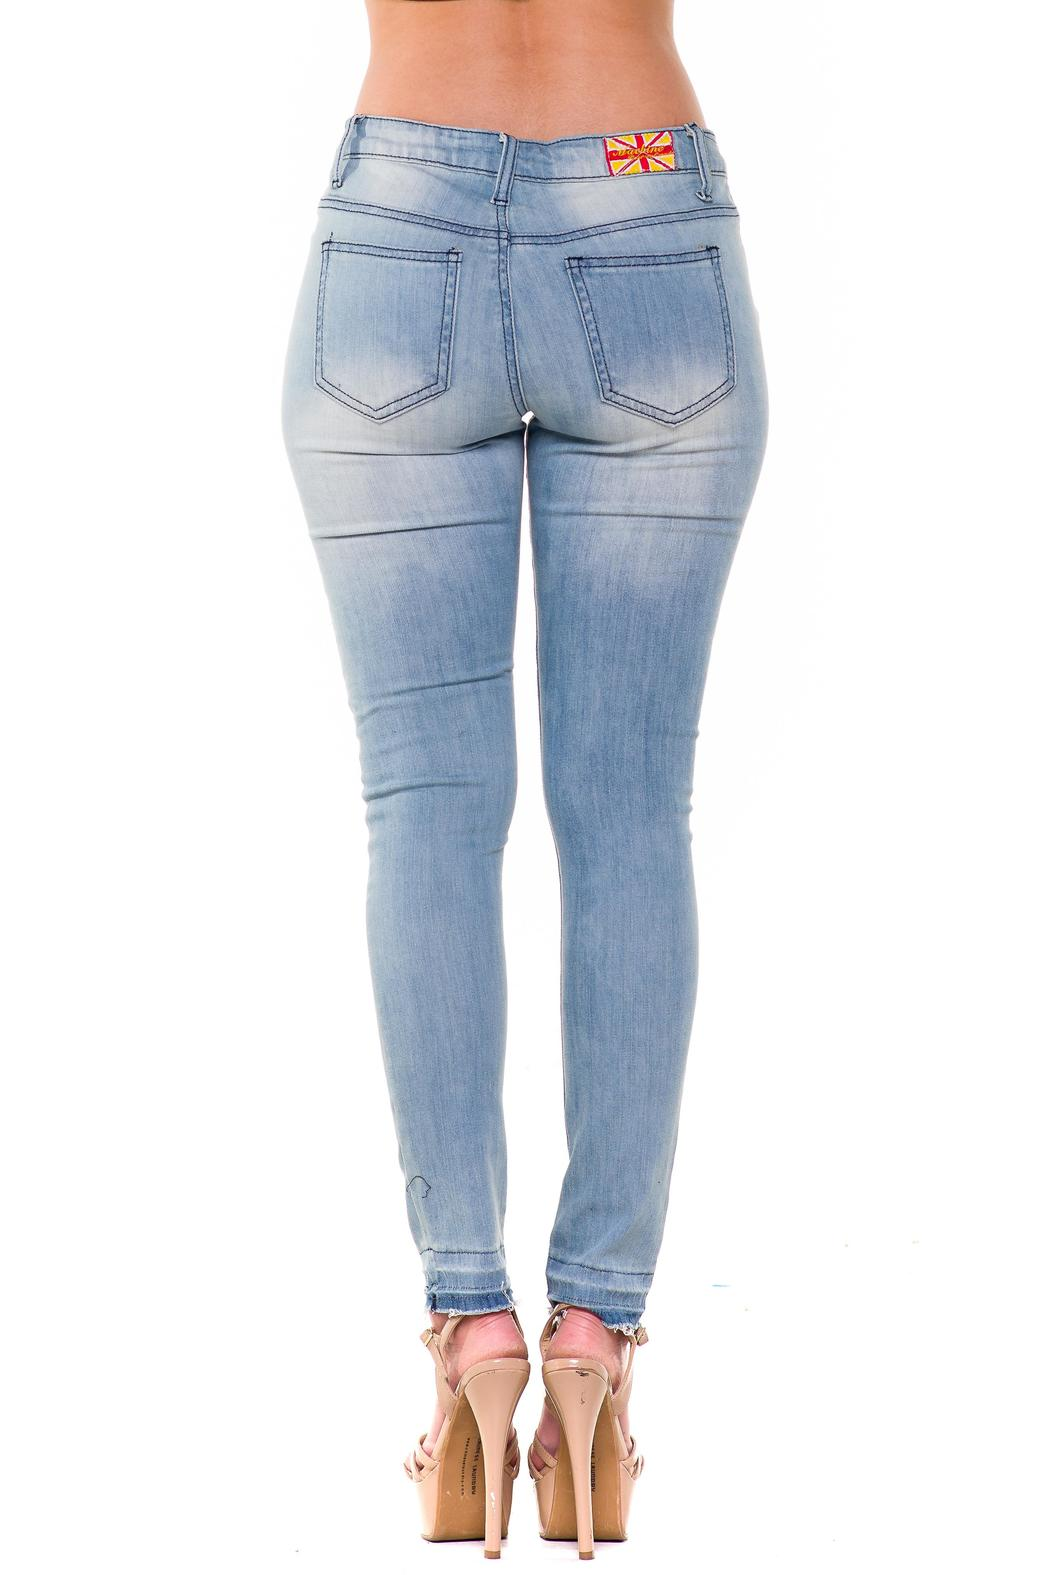 Machine Jeans Slashed Skinny Jeans from Miami by L.A. Roxx ...